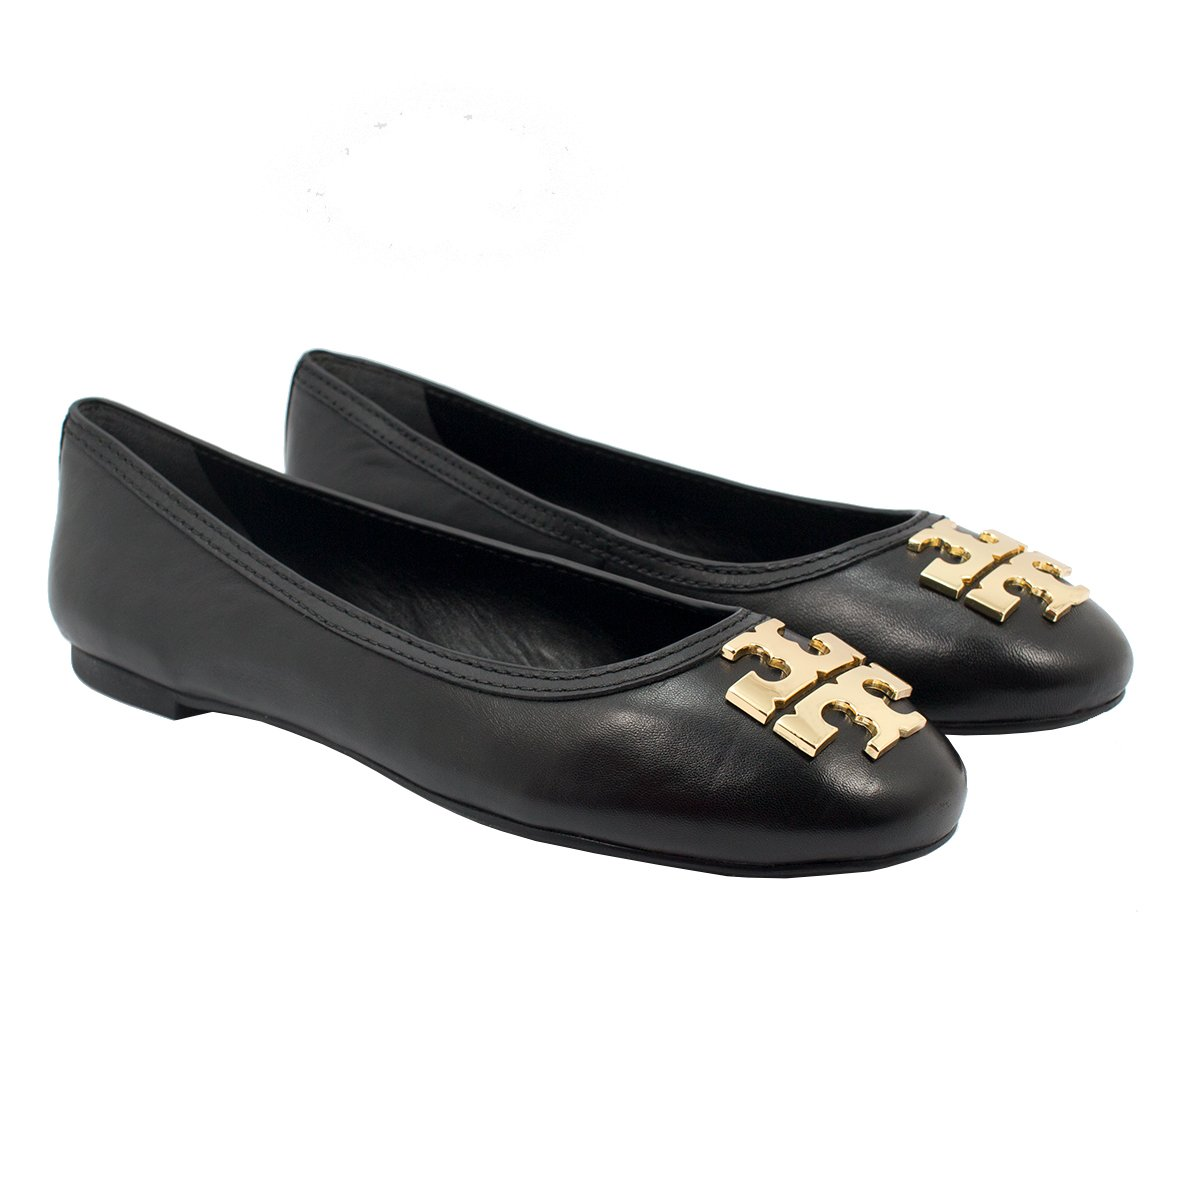 Tory Burch Laura Ballet Mestico Leather Flats, Style No. 34289 (8, Black/Gold)